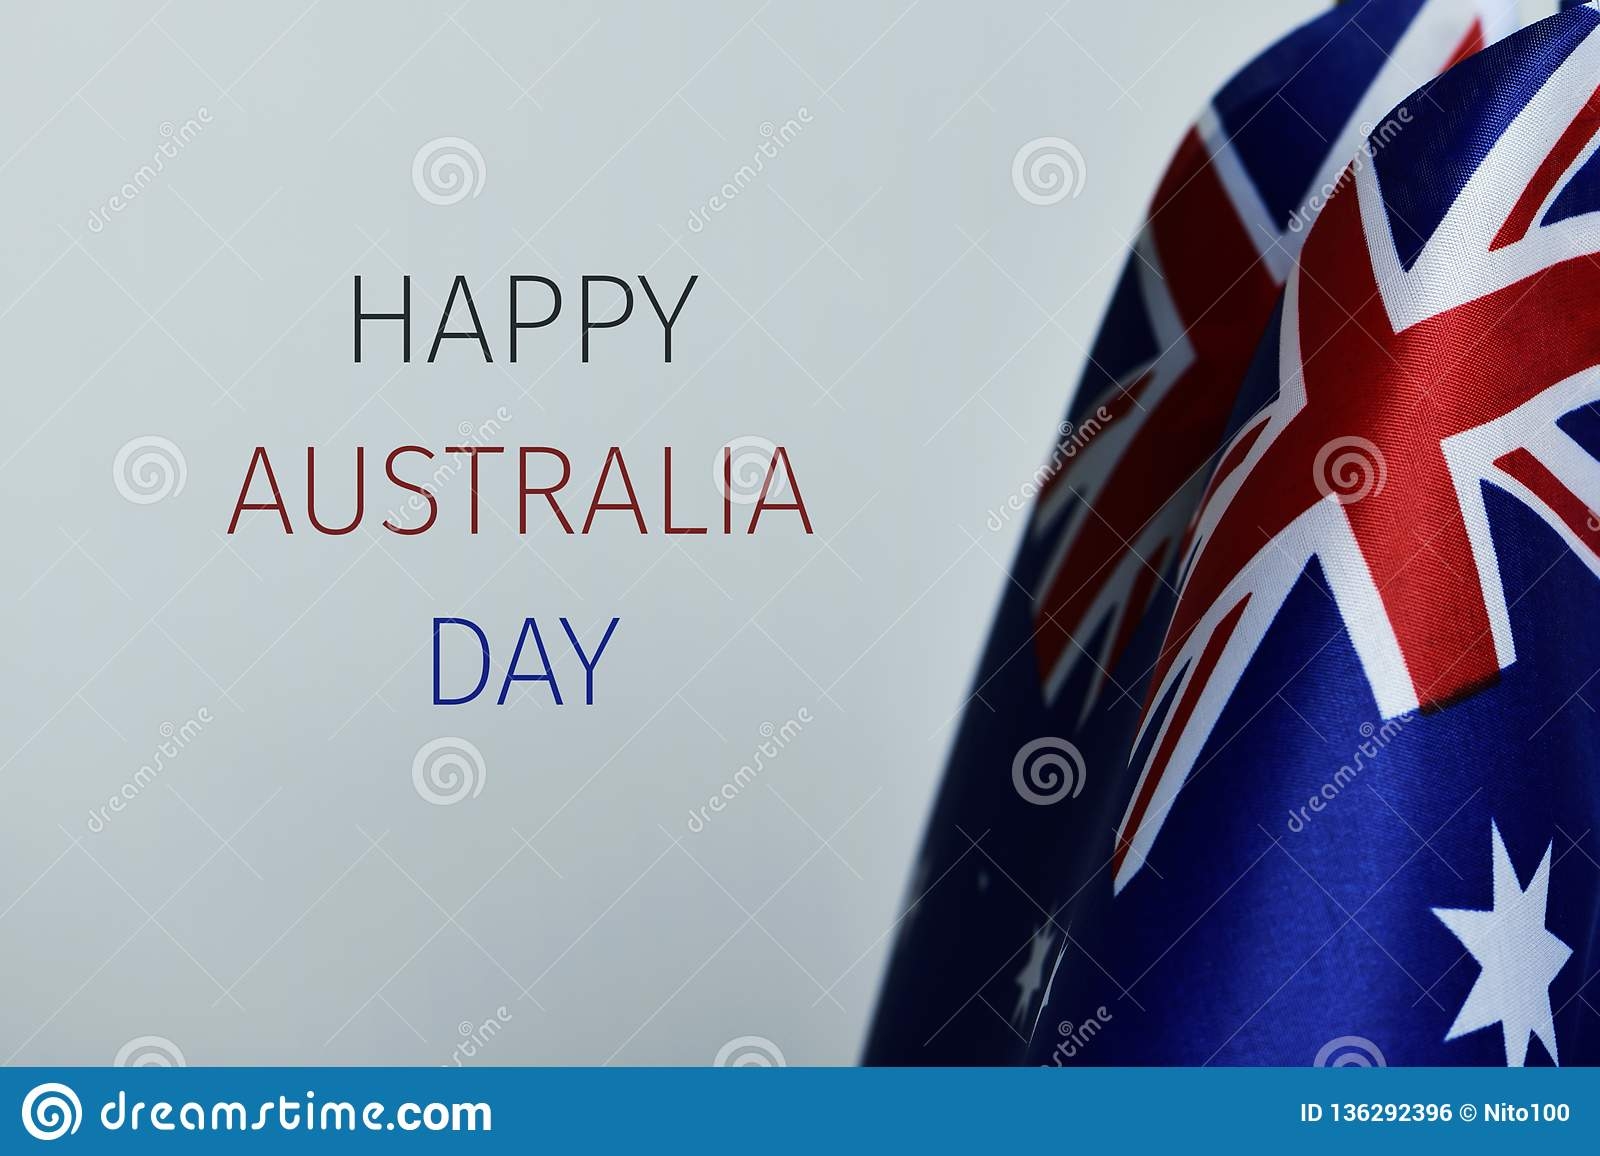 Flags of australia and text happy australia day